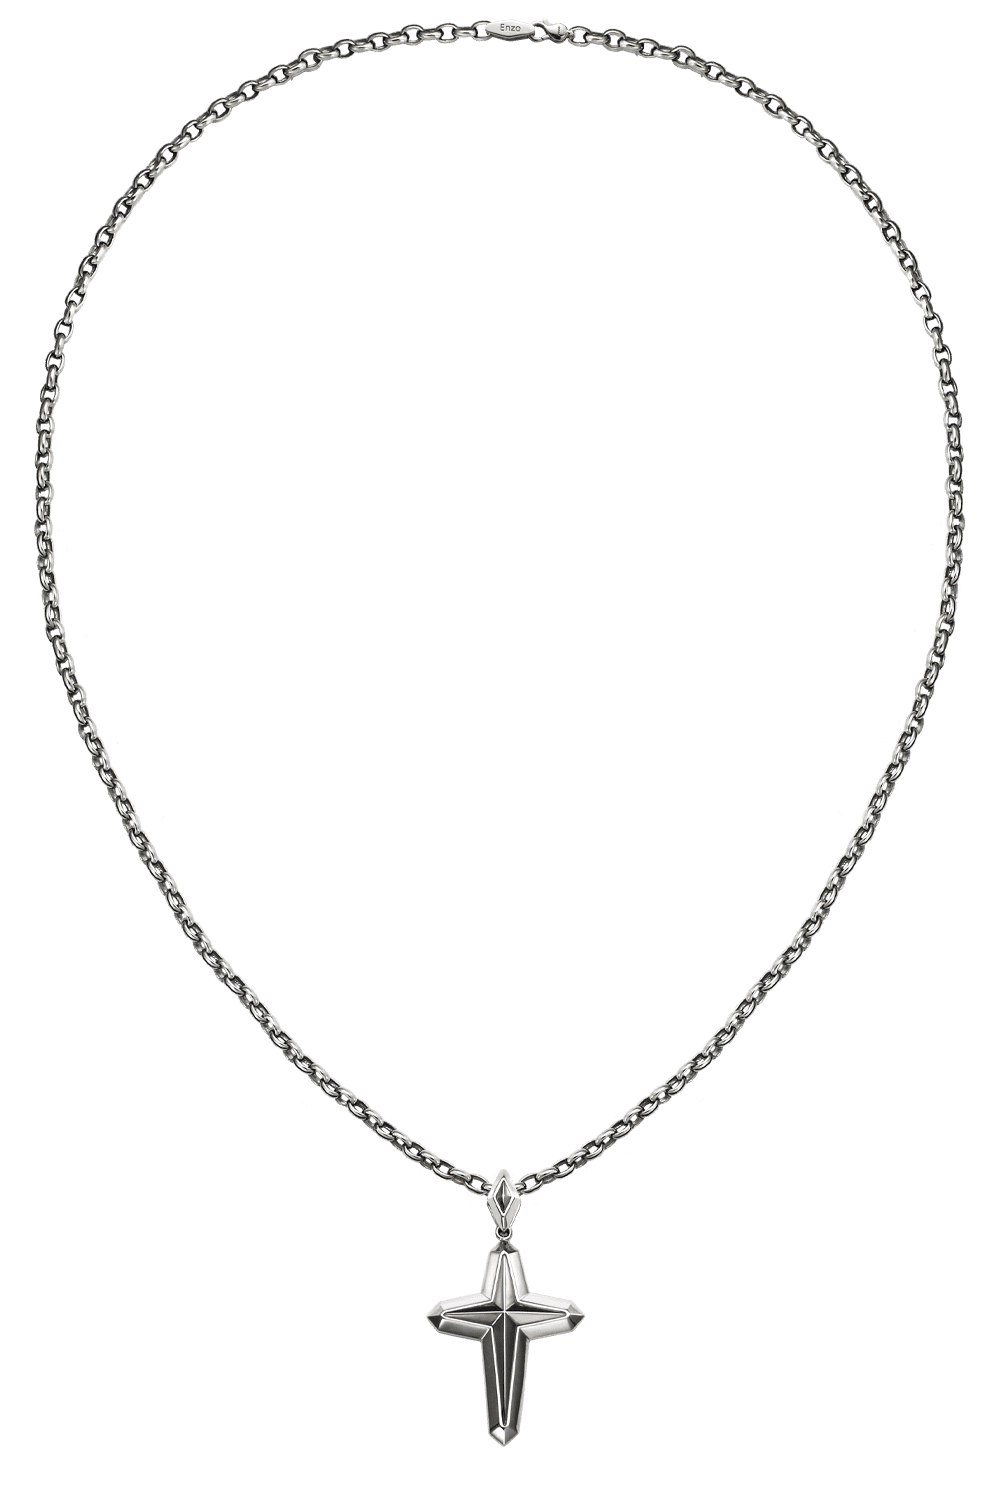 cross platinum pendant with cable lock chain necklace form byenzo jewelry men